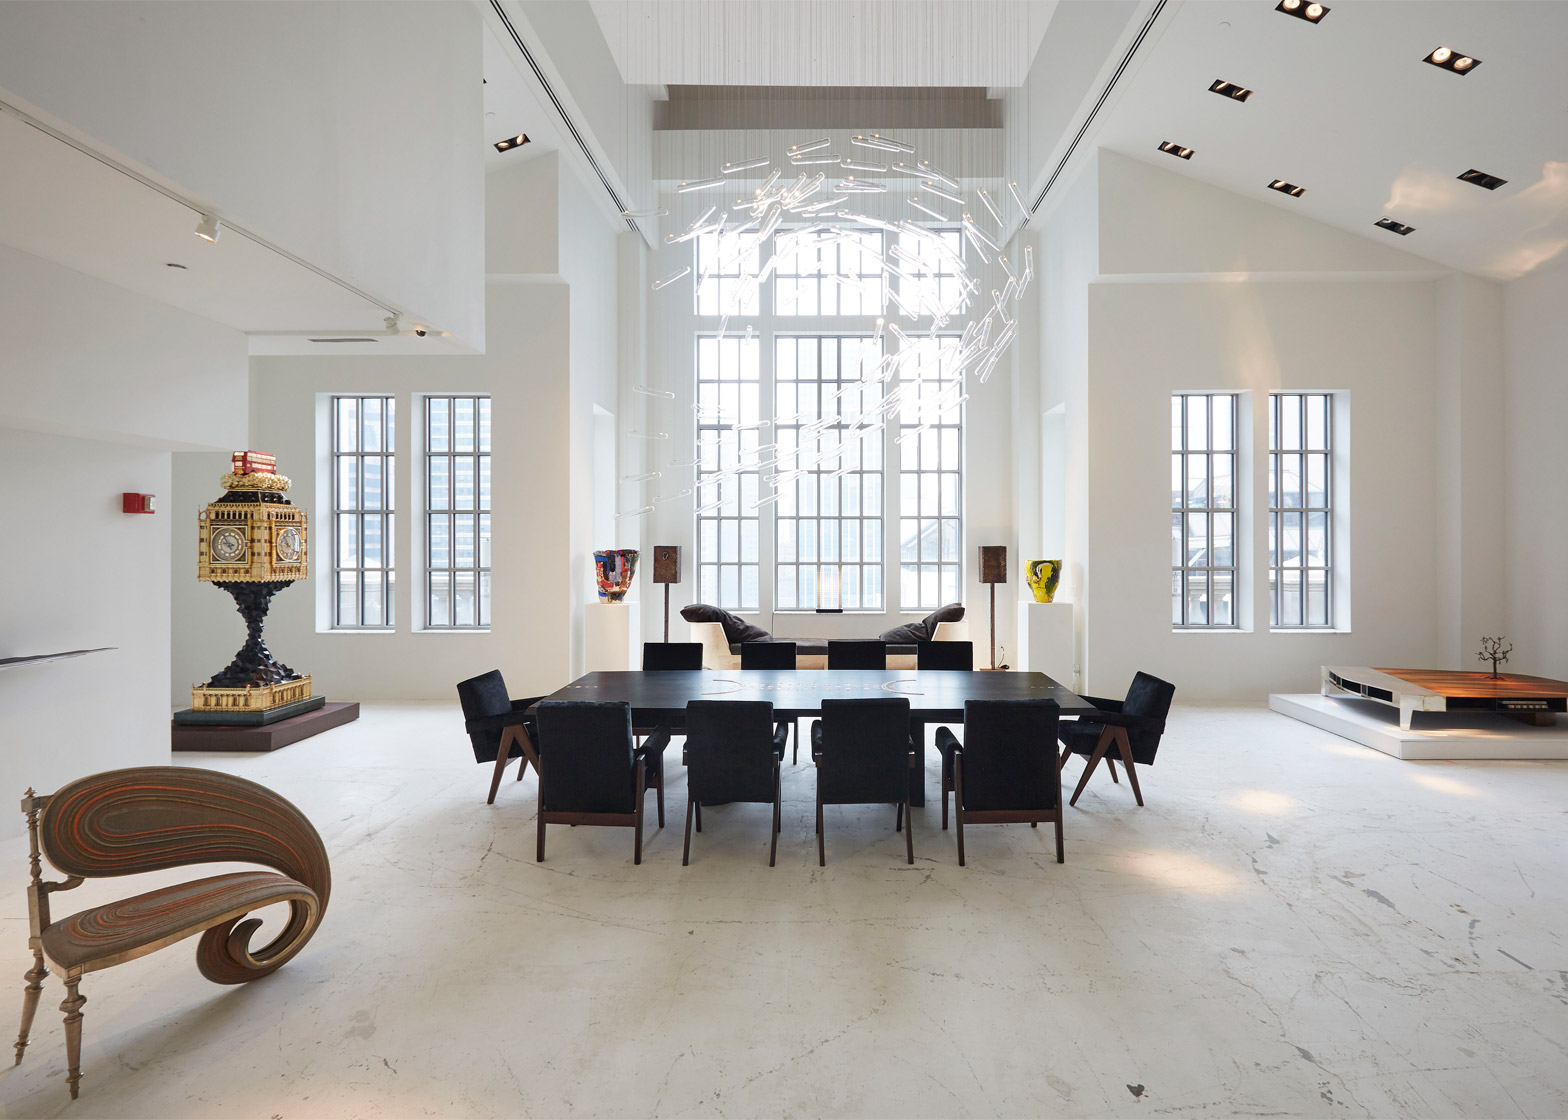 Carpenters Workshop opens first US gallery in New York